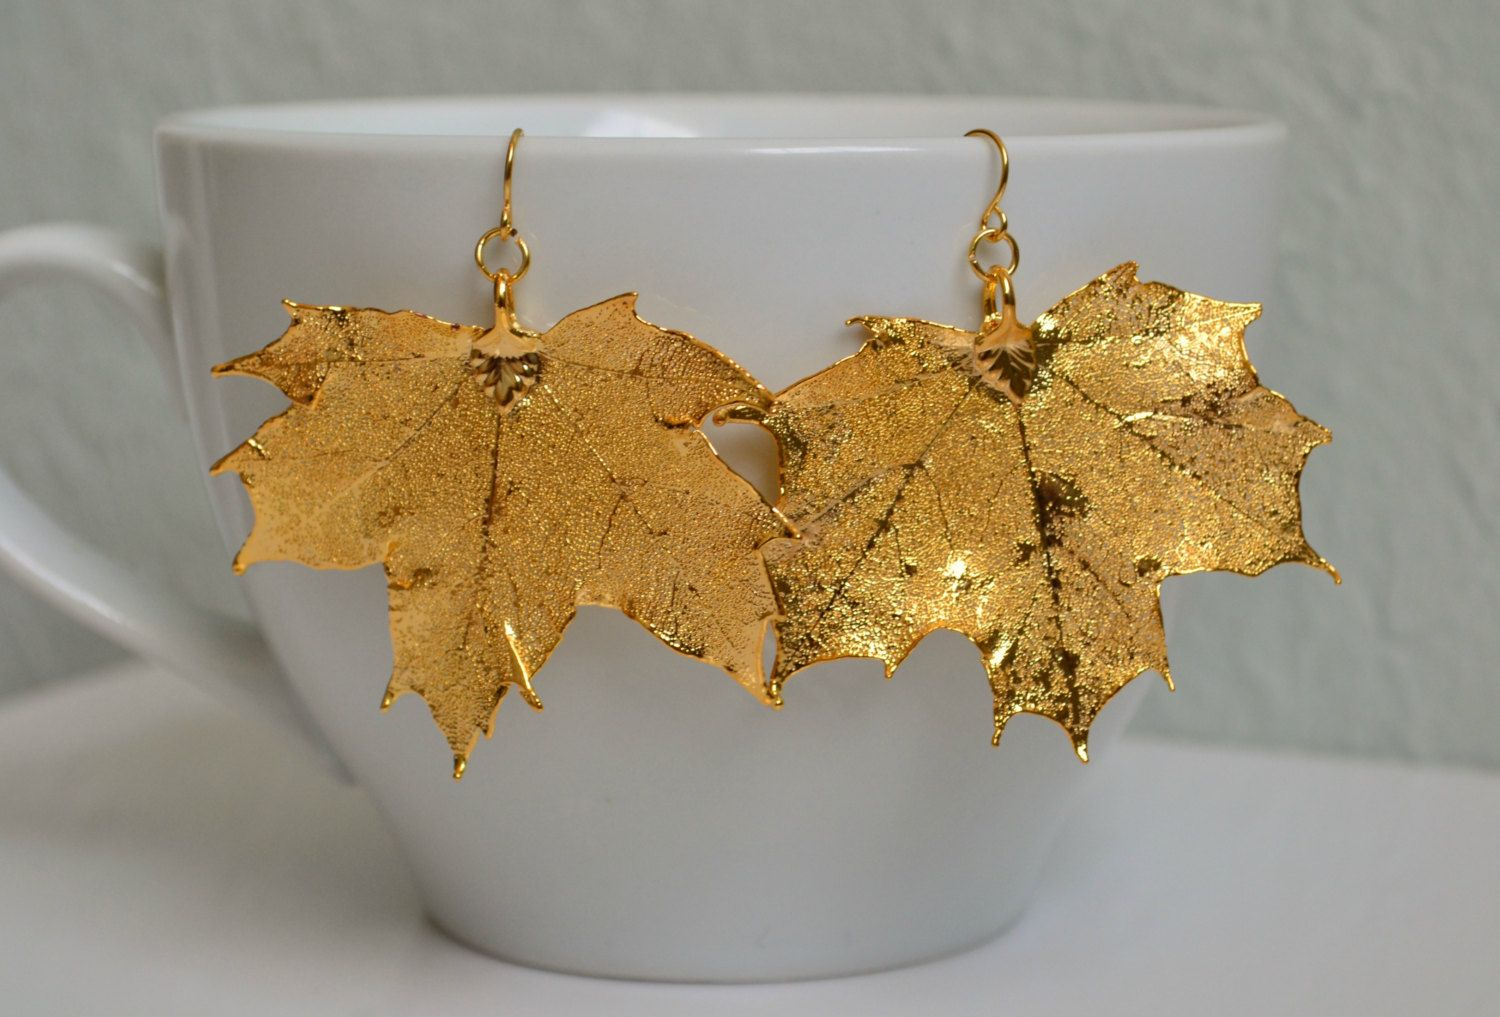 Gold Maple Leaf Earrings - Real Leaves Electroplated in 24 ...